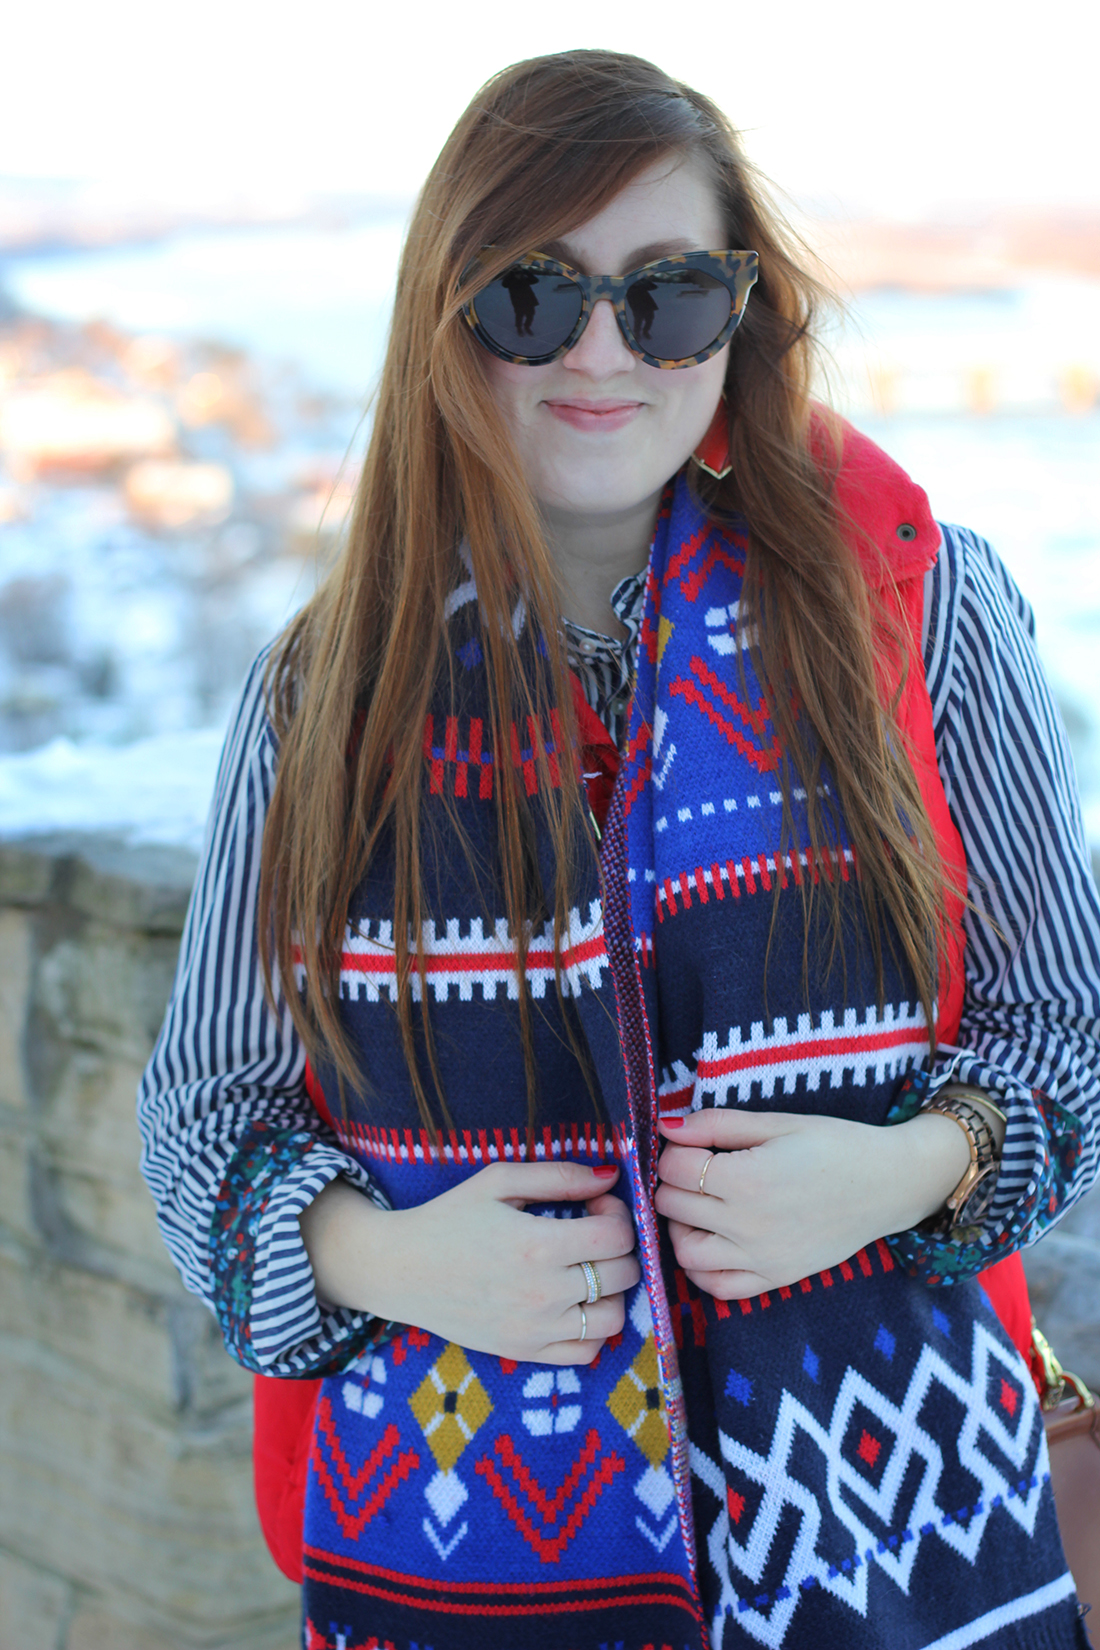 fair-isle-knit-scarf-puffy-vest-shearling-5